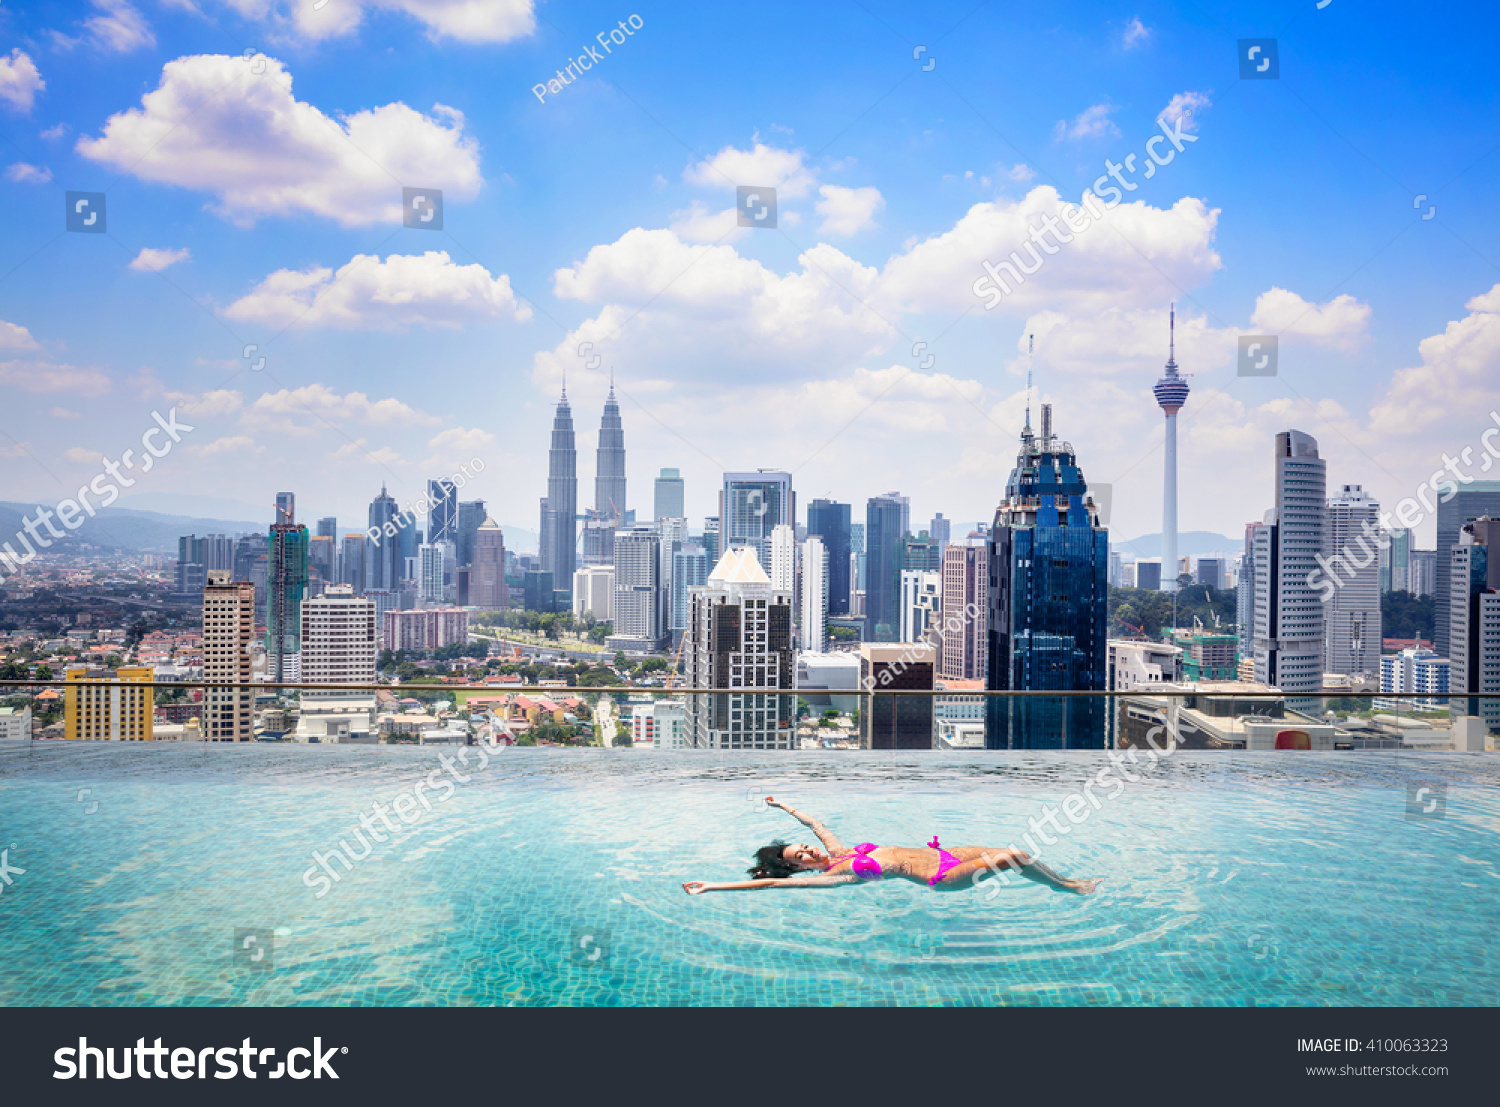 Swimming pool on roof top beautiful stock photo 410063323 shutterstock for Best hotel swimming pool in kuala lumpur